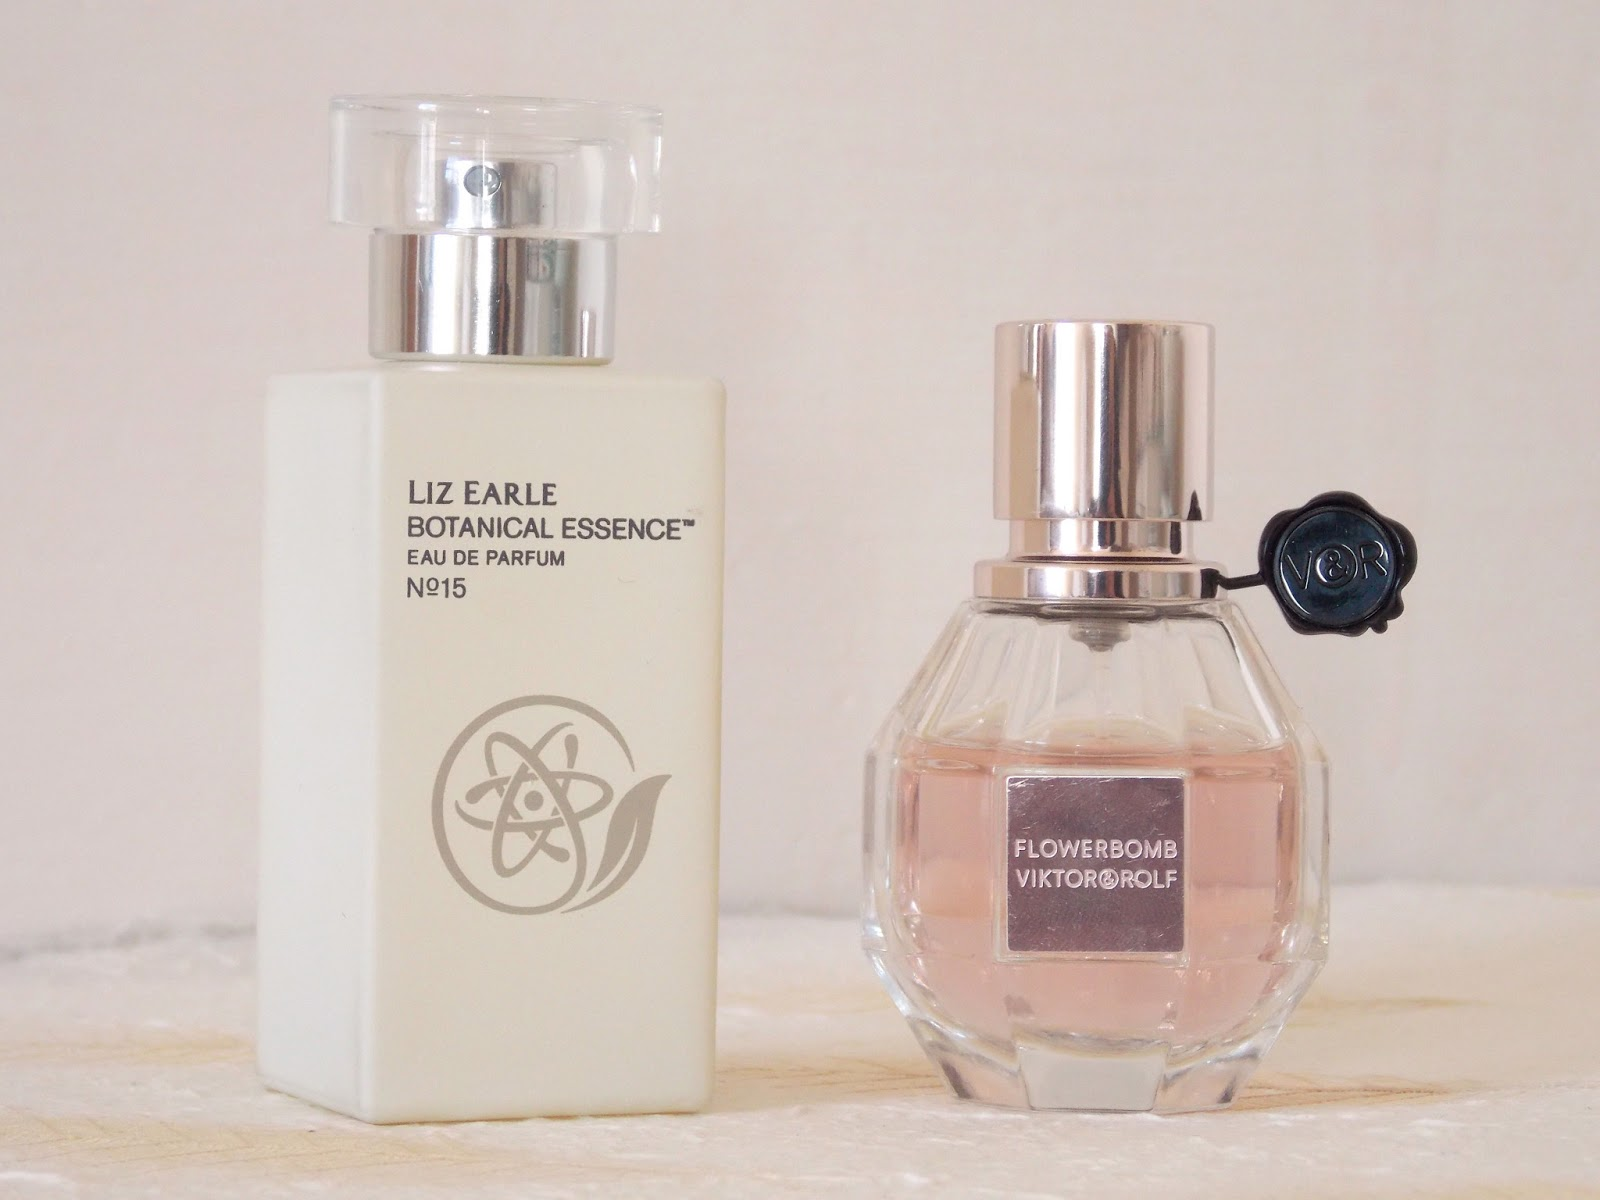 Liz Earle Botanical Essences No.15 and Viktor and Rolf Flowerbomb